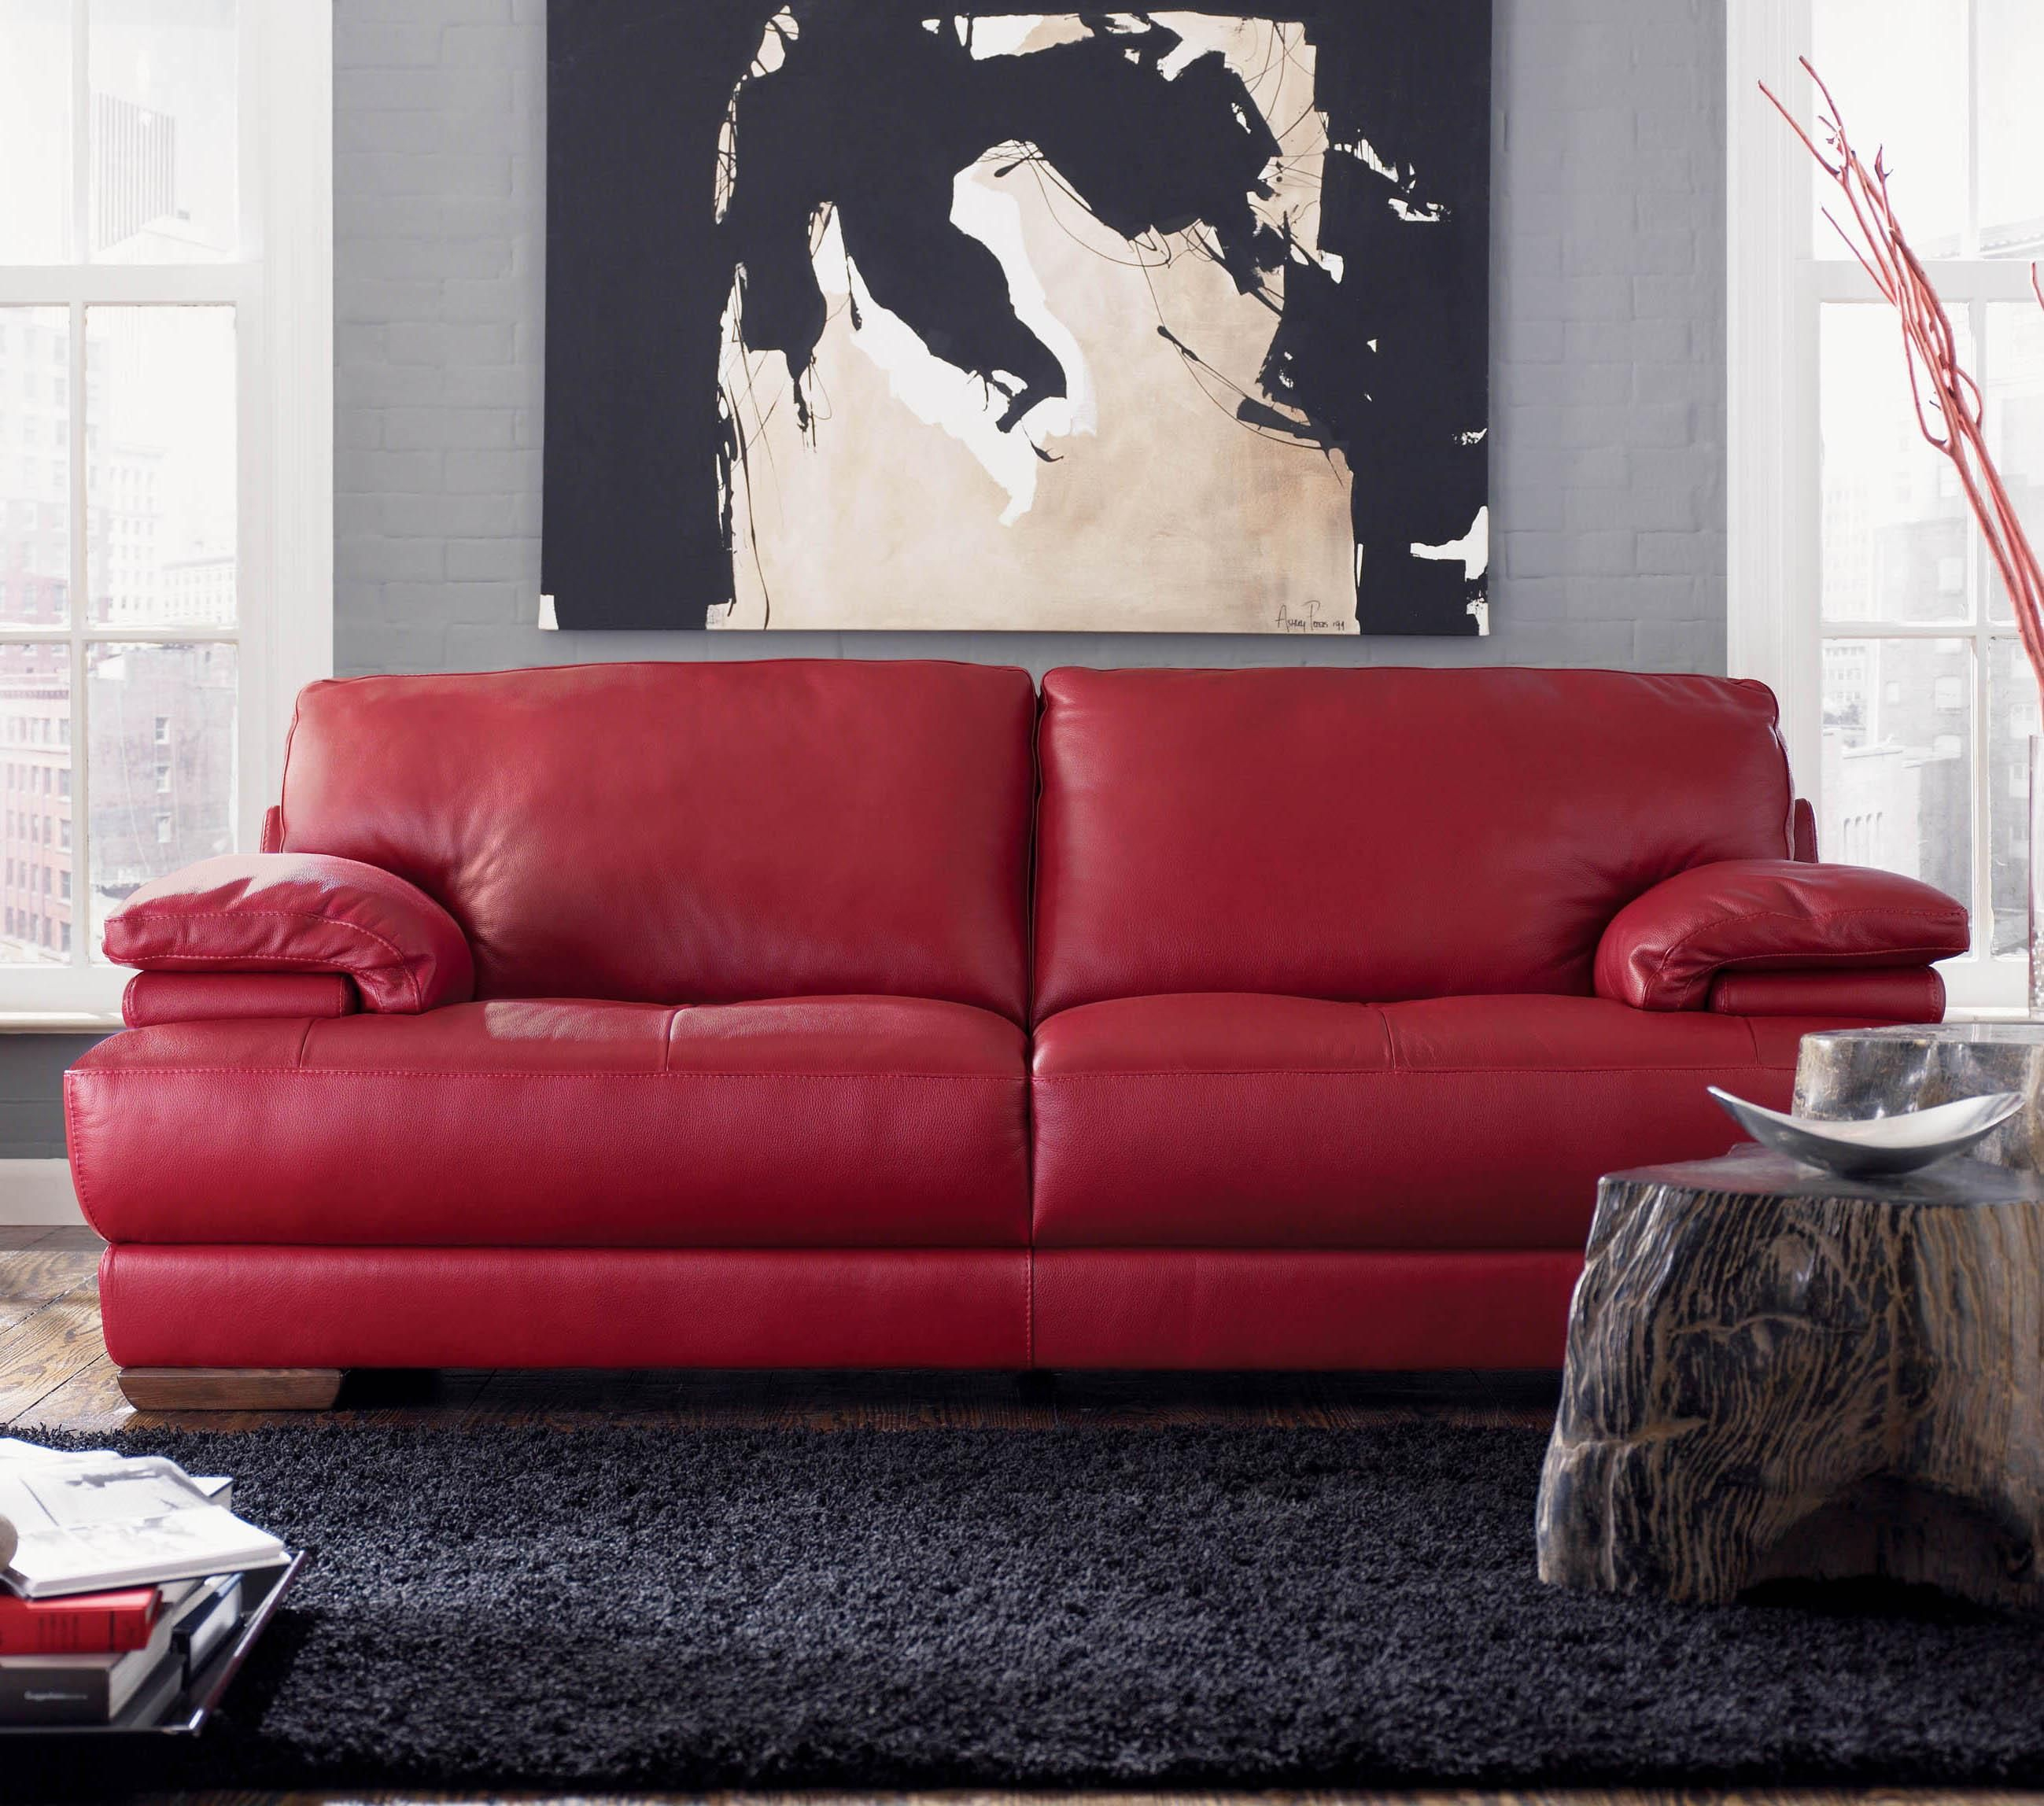 B504 Leather Sofa Natuzzi Editions Family Room throughout size 2598 X 2296